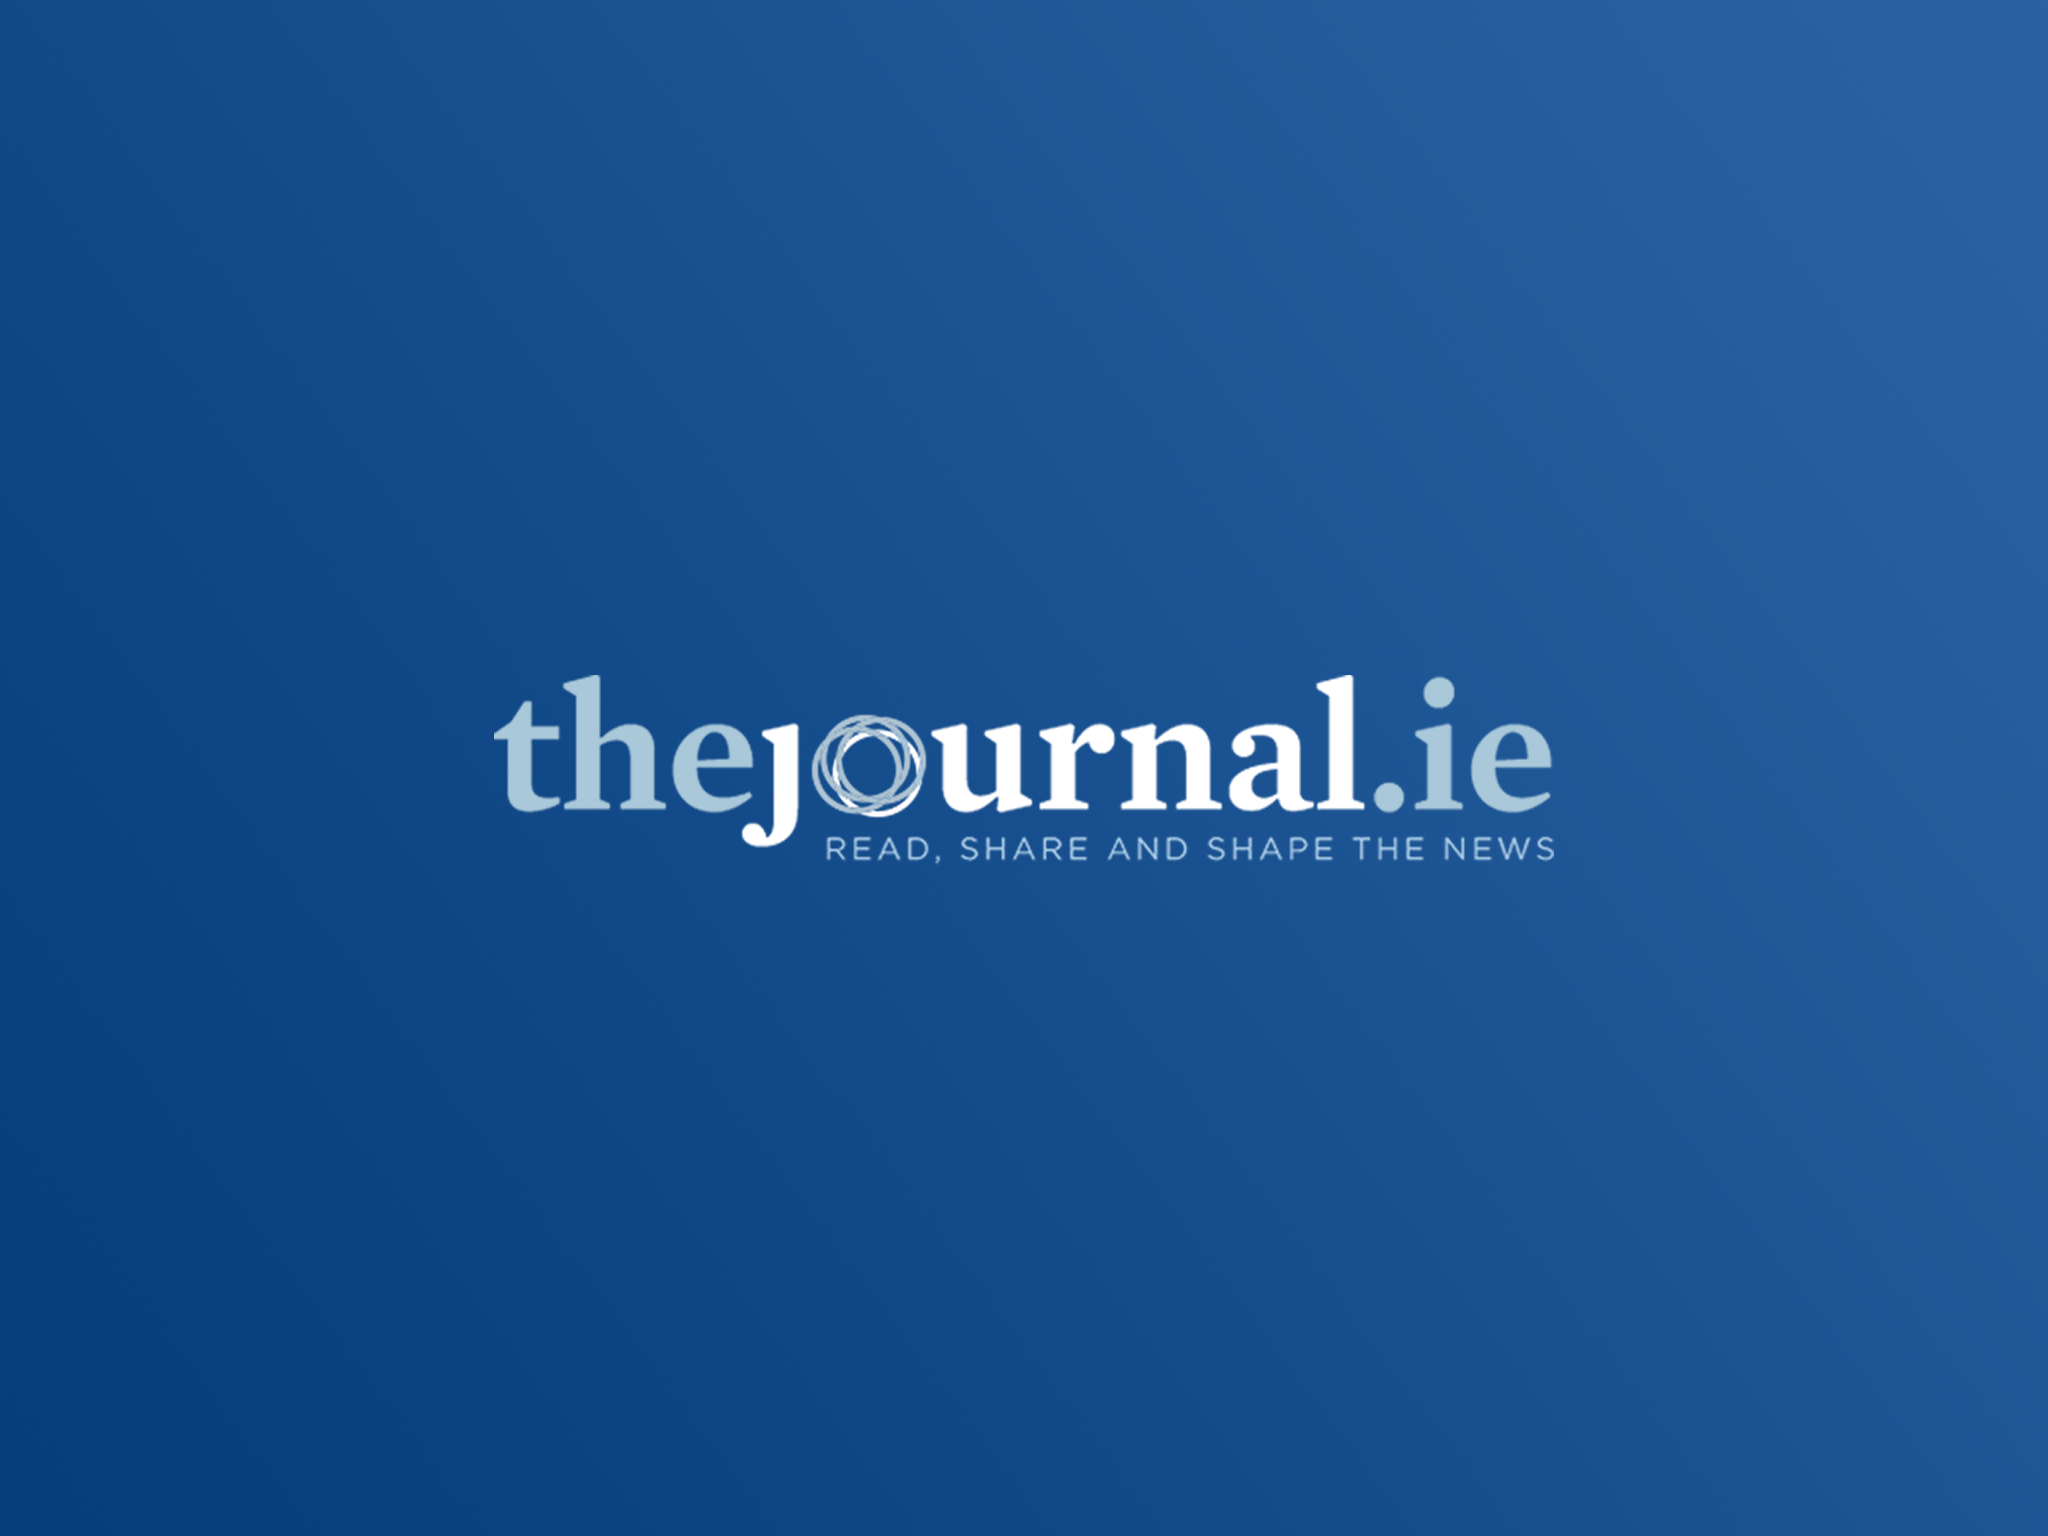 TheJournal ie - Read, Share and Shape the News